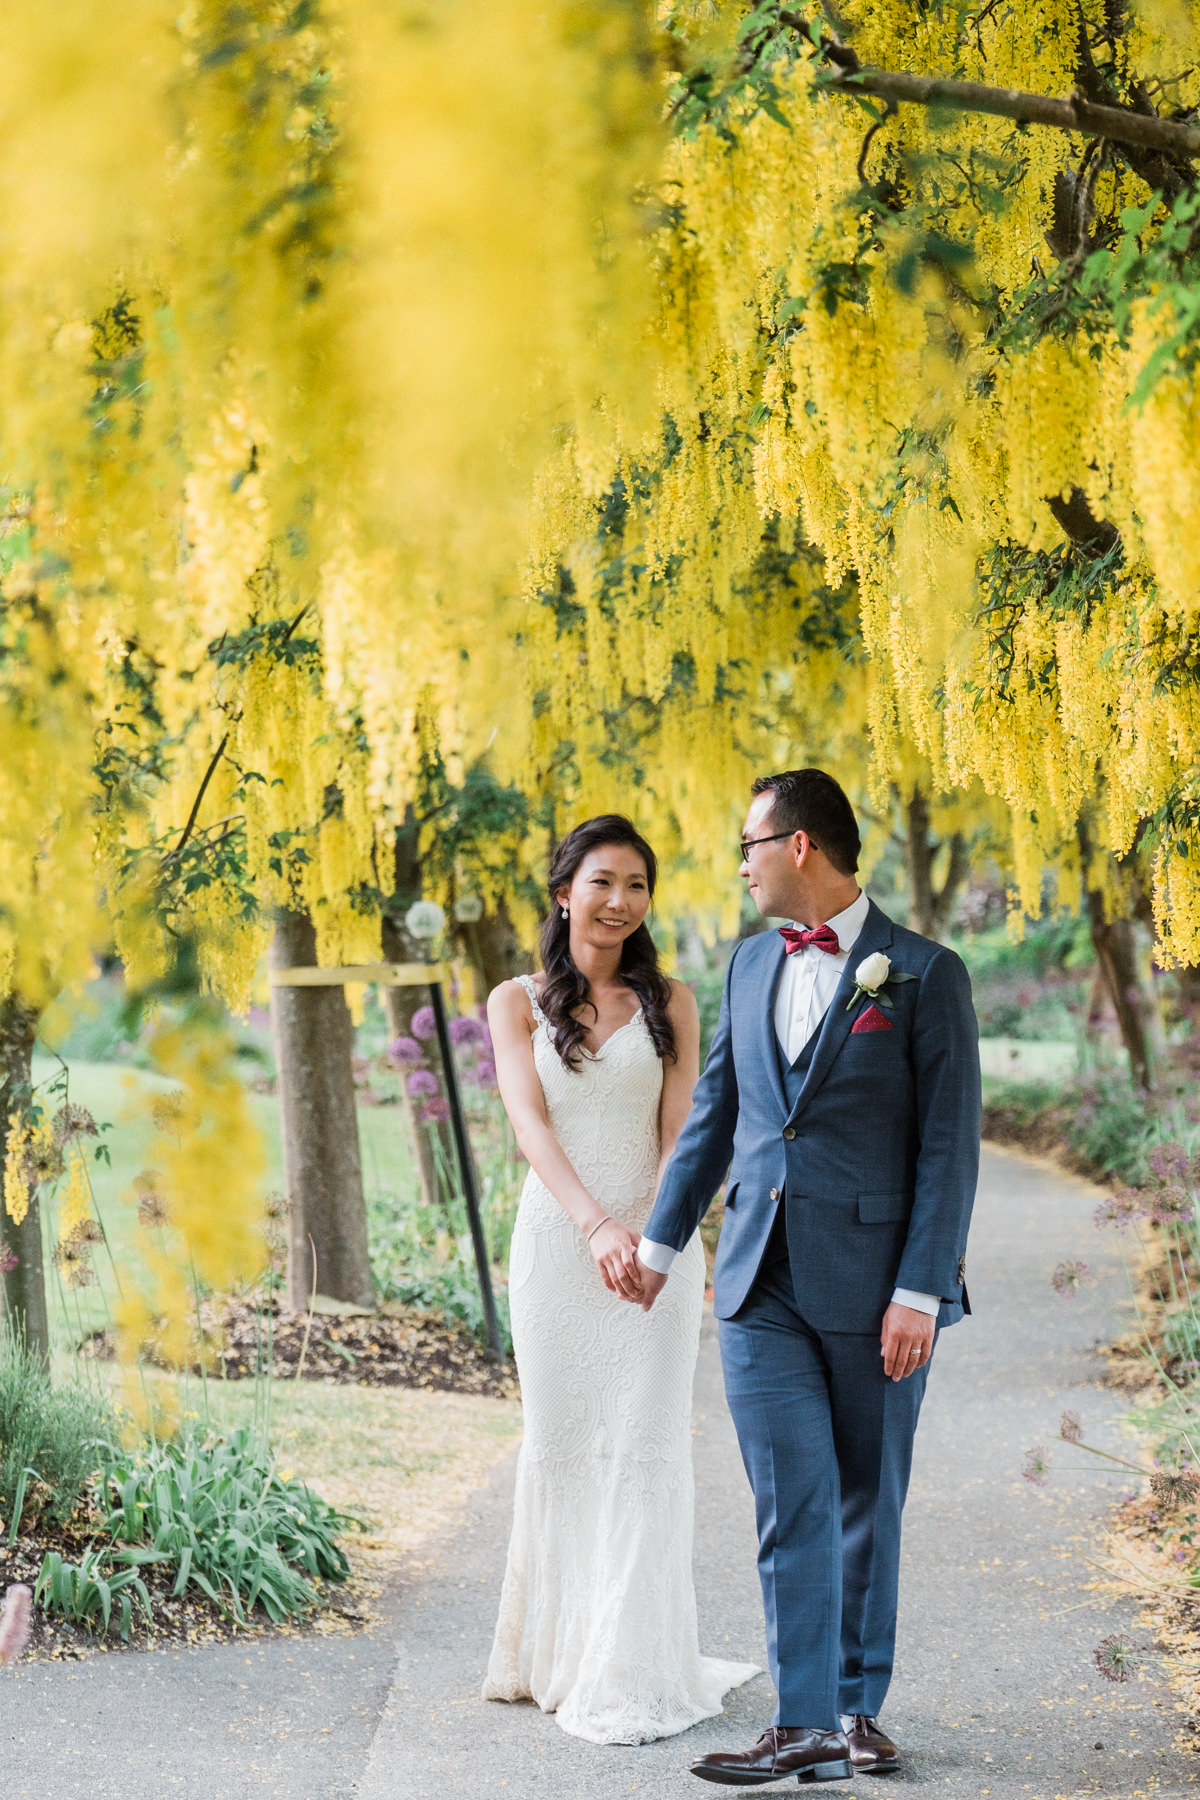 Vandusen Gardens Golden Chain wedding photos